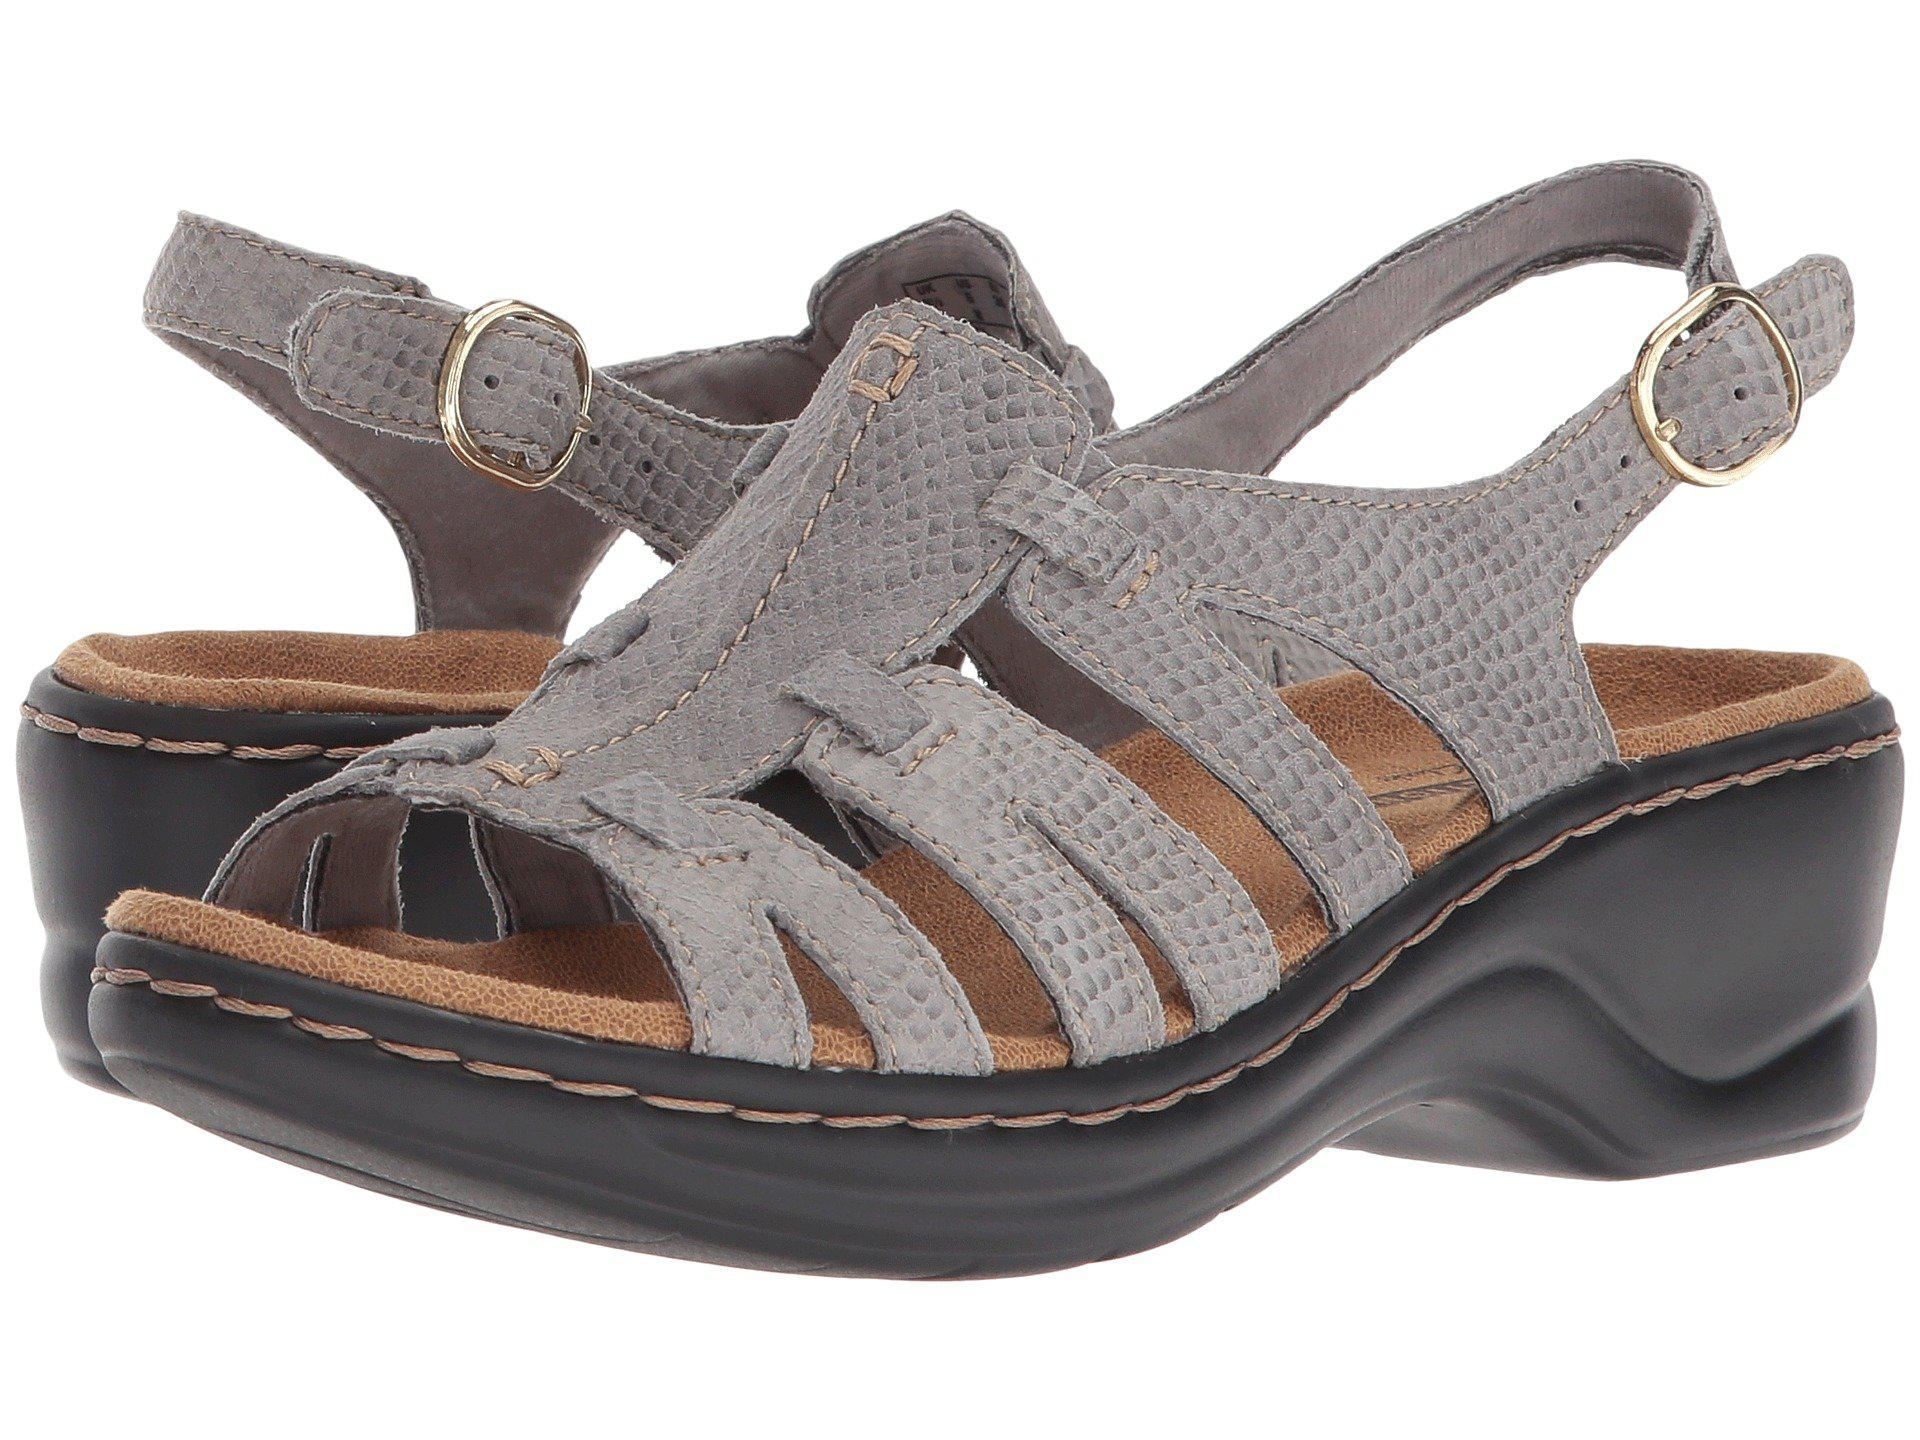 2a974398379bb Lyst - Clarks Lexi Marigold Q (white Leather) Women s Sandals in Gray